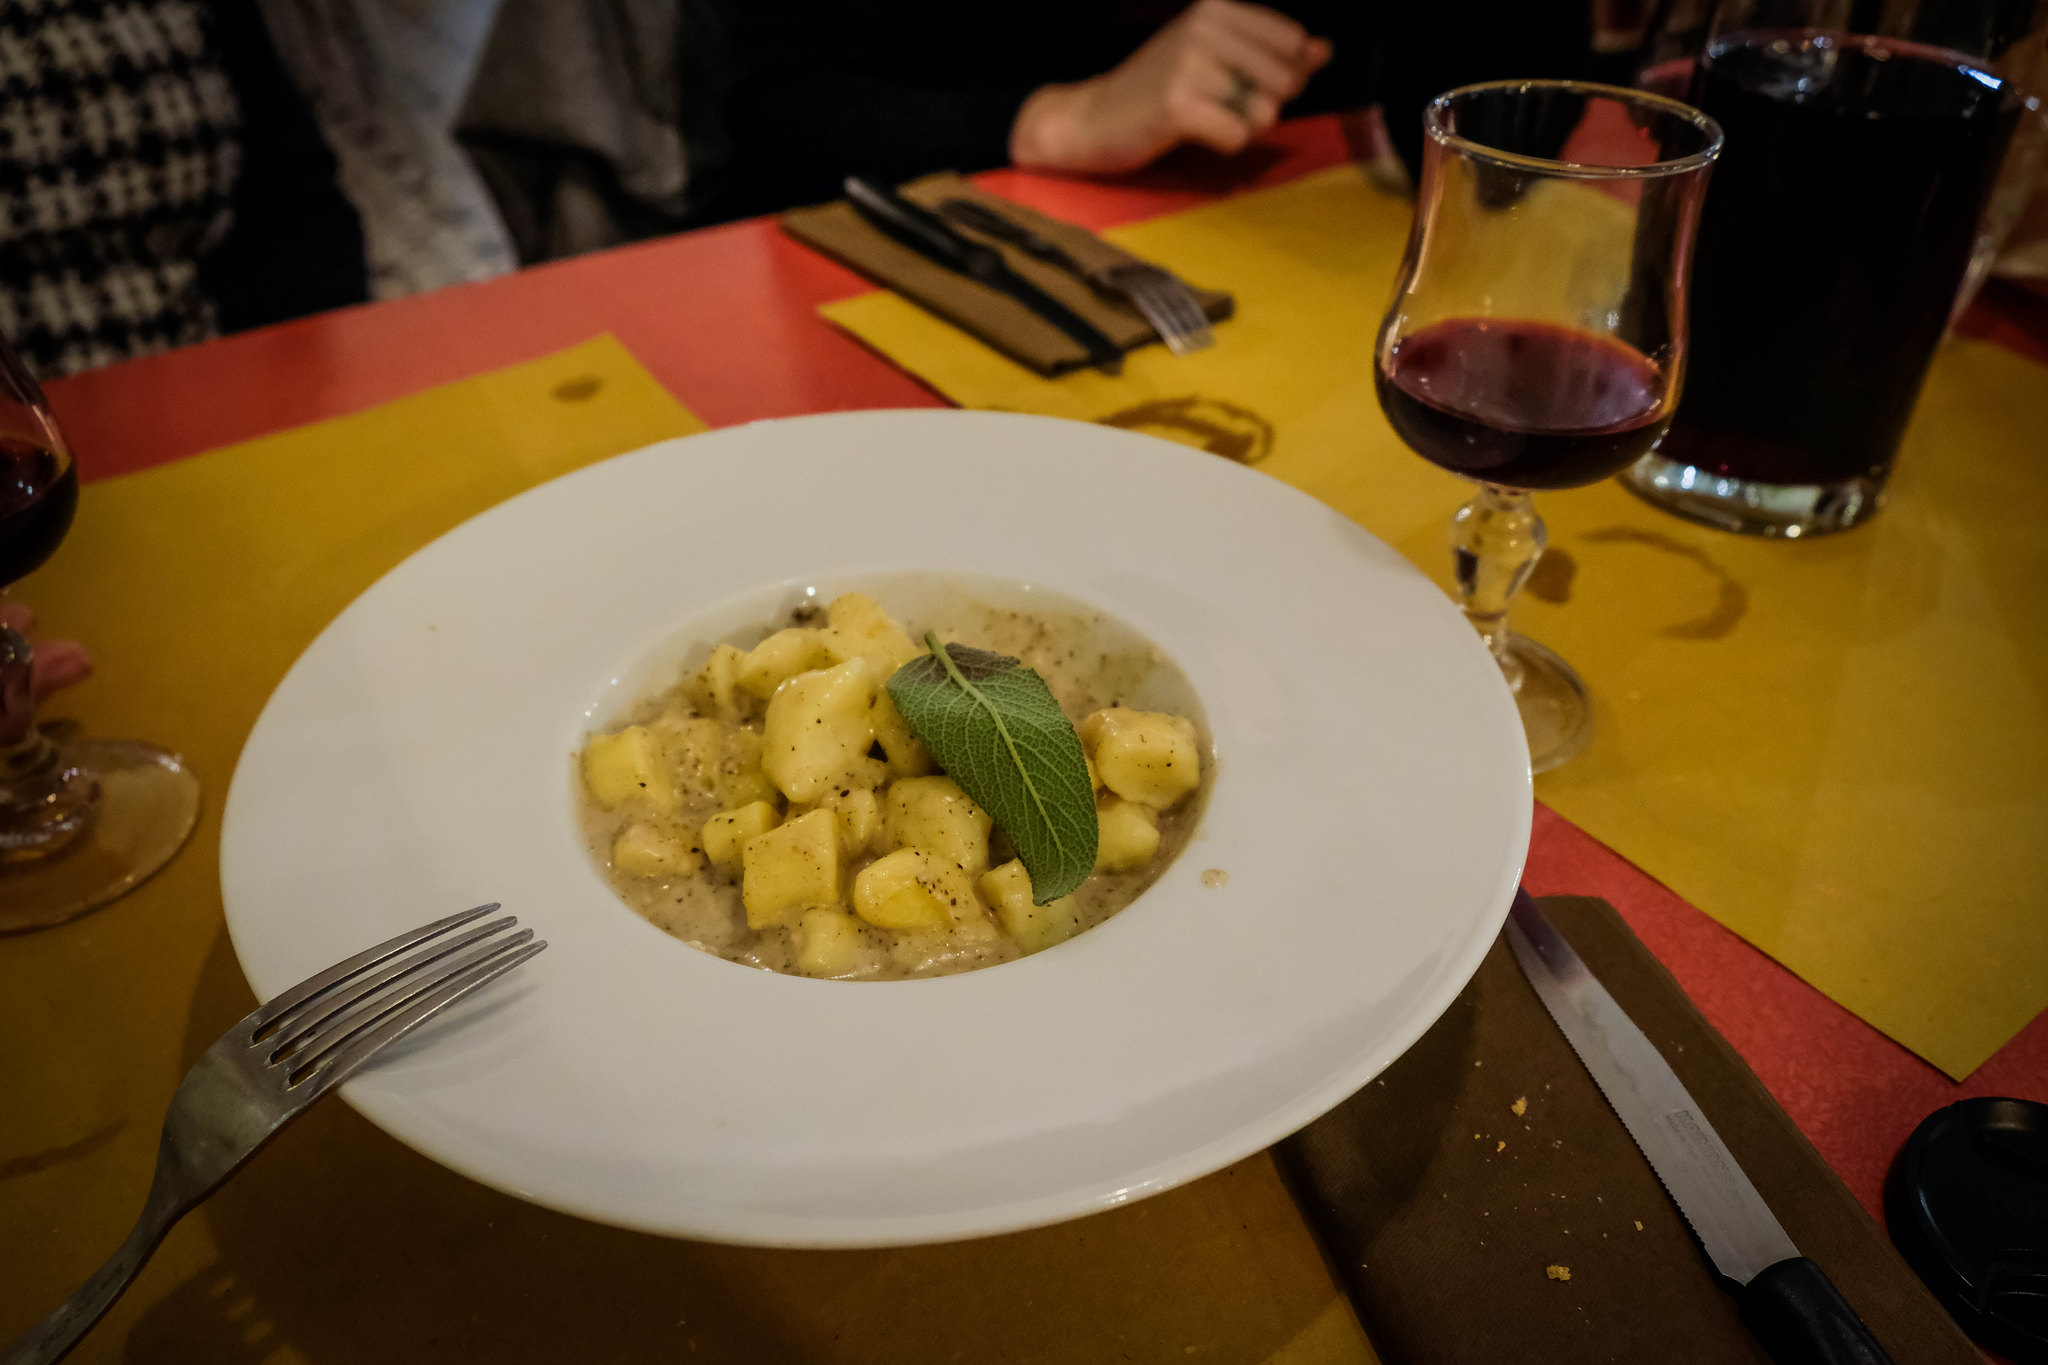 Truffle pasta at Braciere Malatesta Firenze